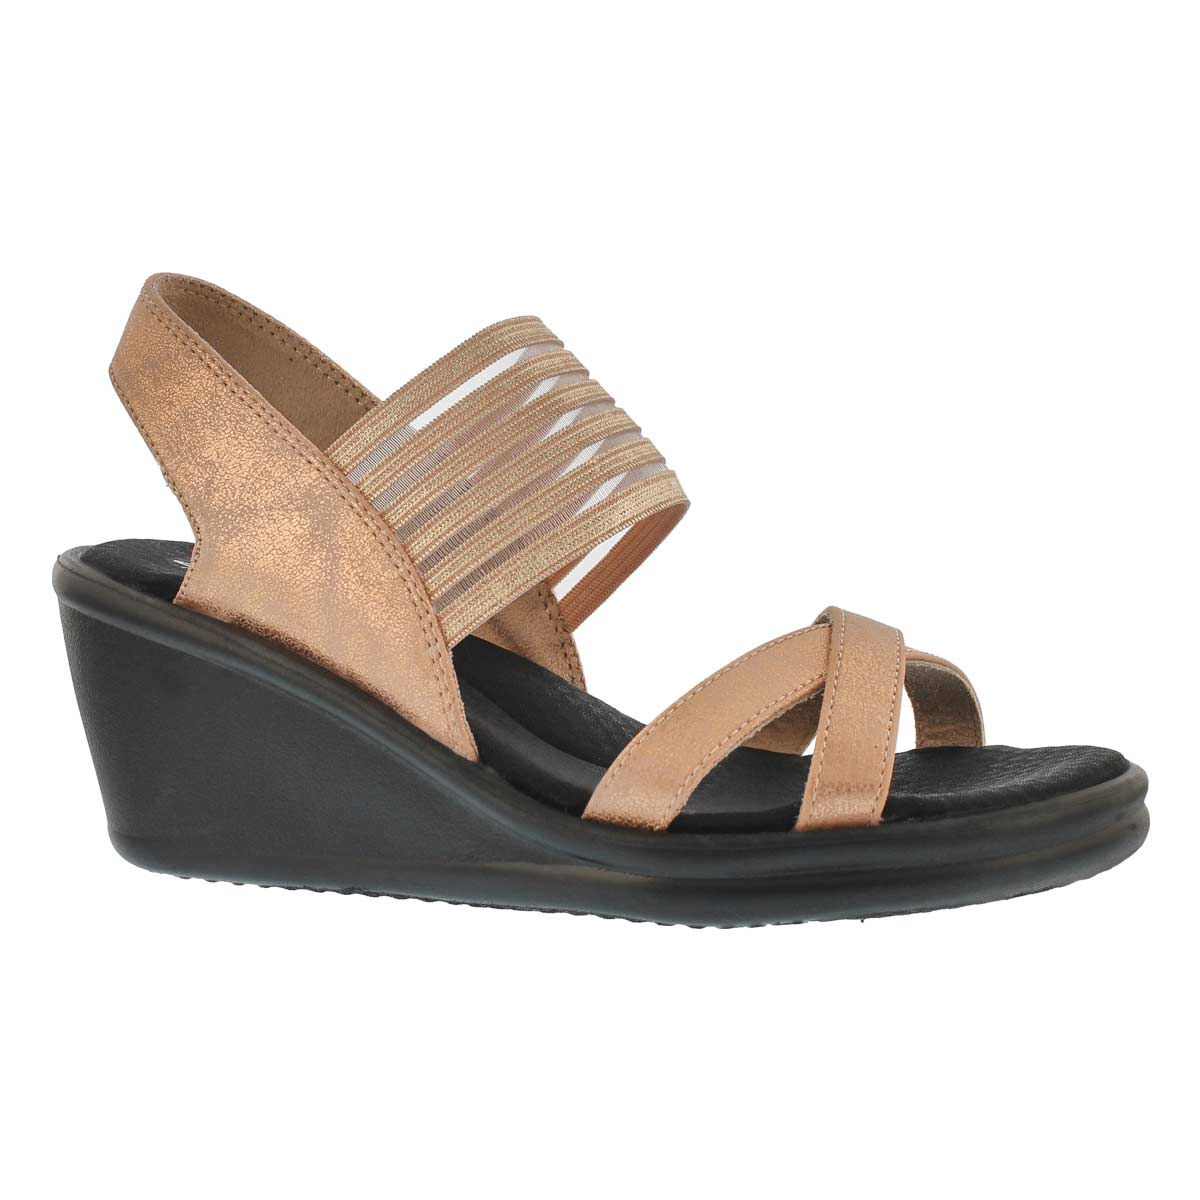 Women's RUMBLERS GLAM SOCIETY rose gold  sandals